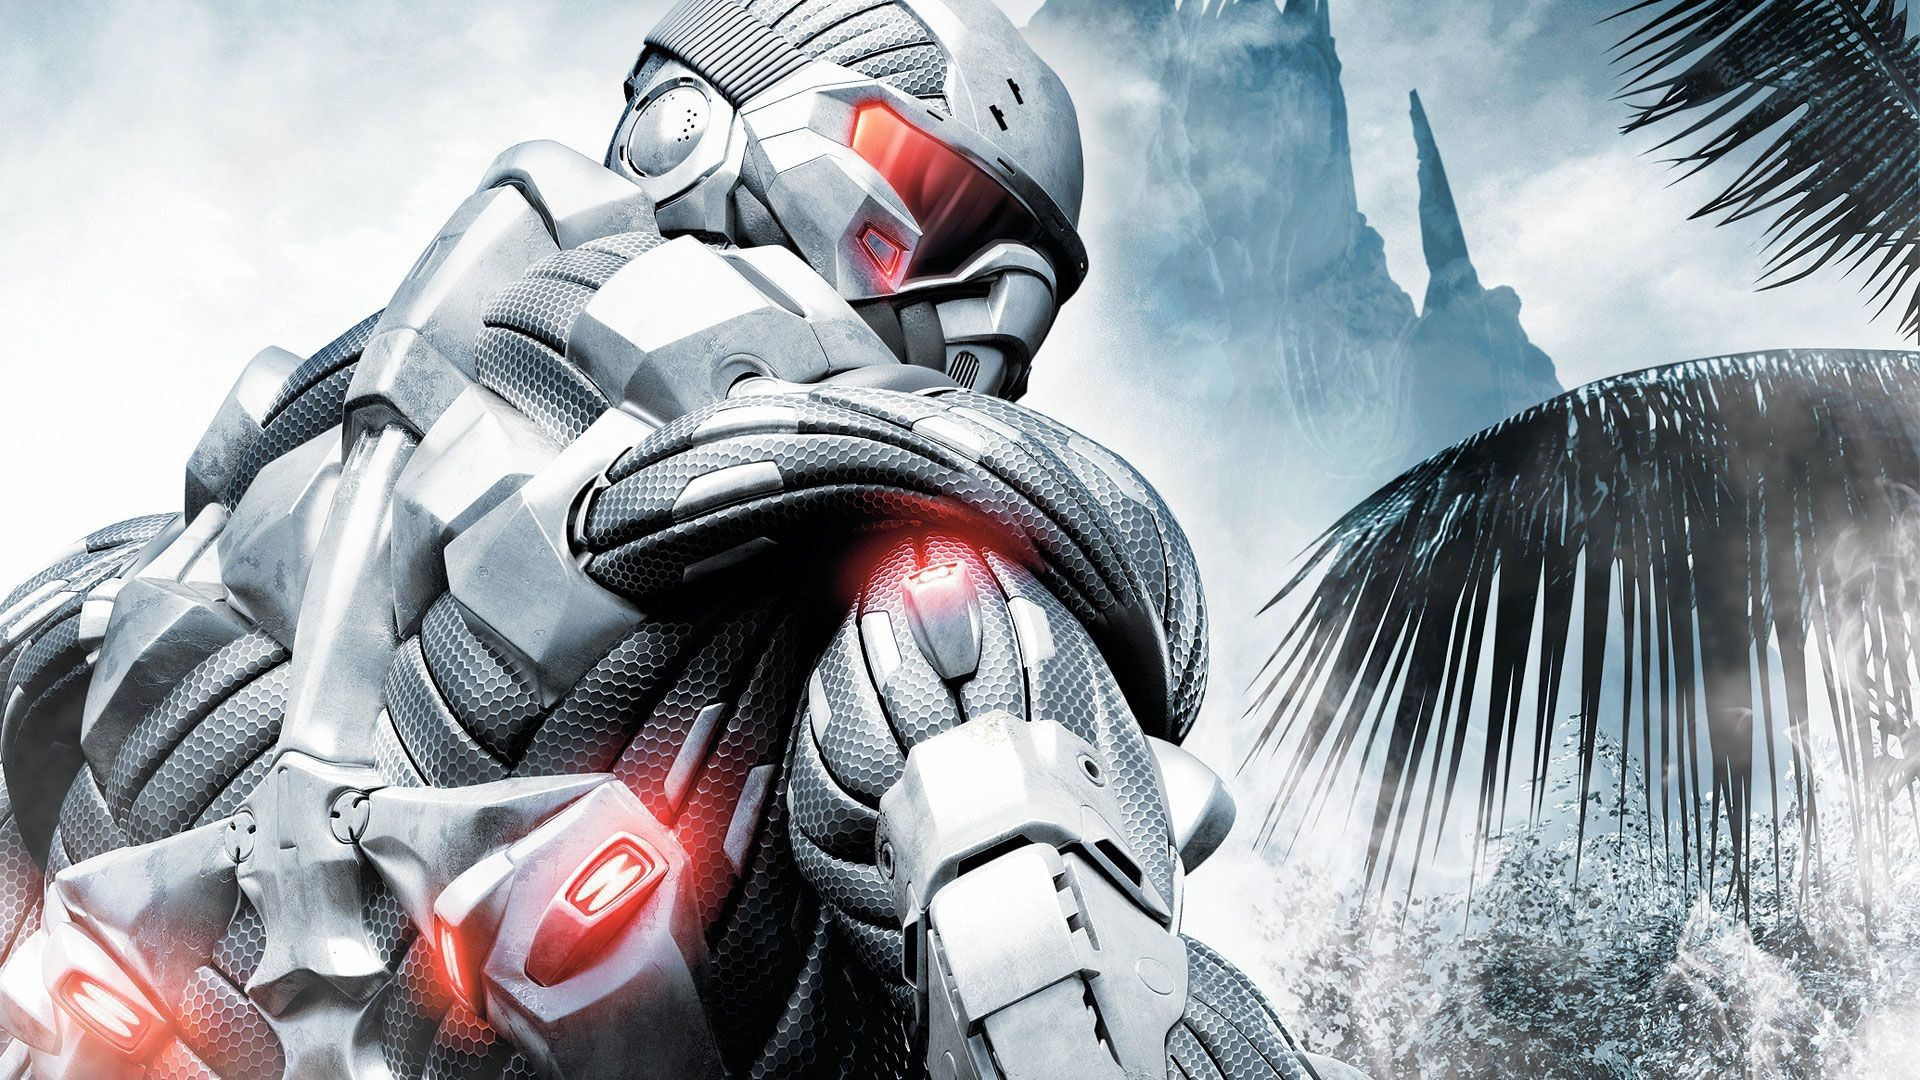 Res: 1920x1080, Total 186 Wallpapers of Popular Games in HDTV (1080p) Resolutions ...  http://www.liannmarketing.com/xbox360